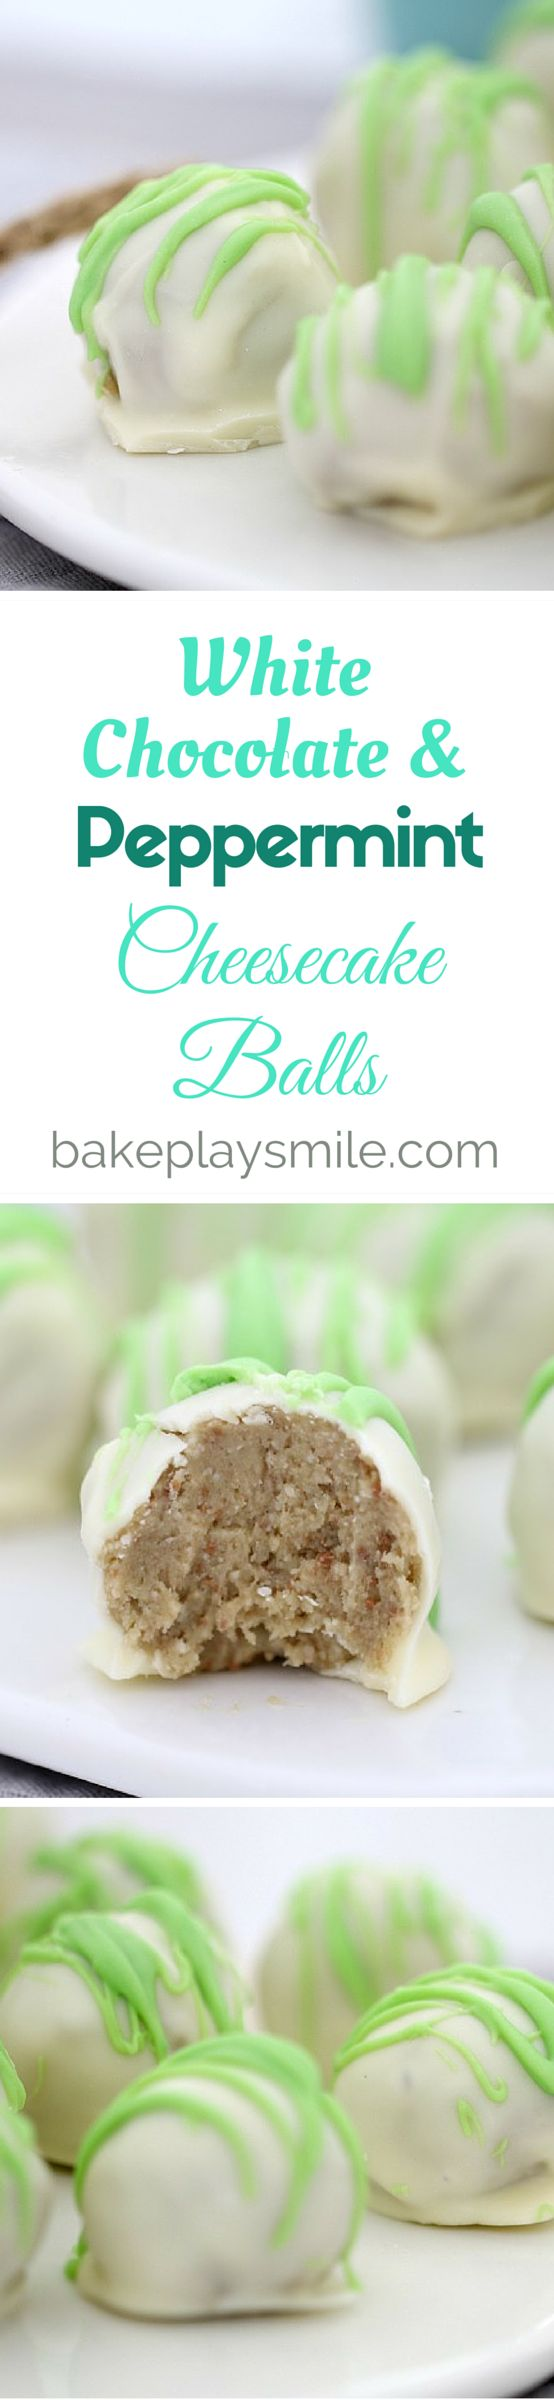 The easiest White Chocolate and Peppermint Crisp Cheesecake Balls ever!!! These take 10 minutes to prepare, are completely no-bake and taste amazing!!! Perfect as gifts for family and friends! #chocolate #peppermint #cheesecake #balls #truffles #easy #nobake #timtams #christmas